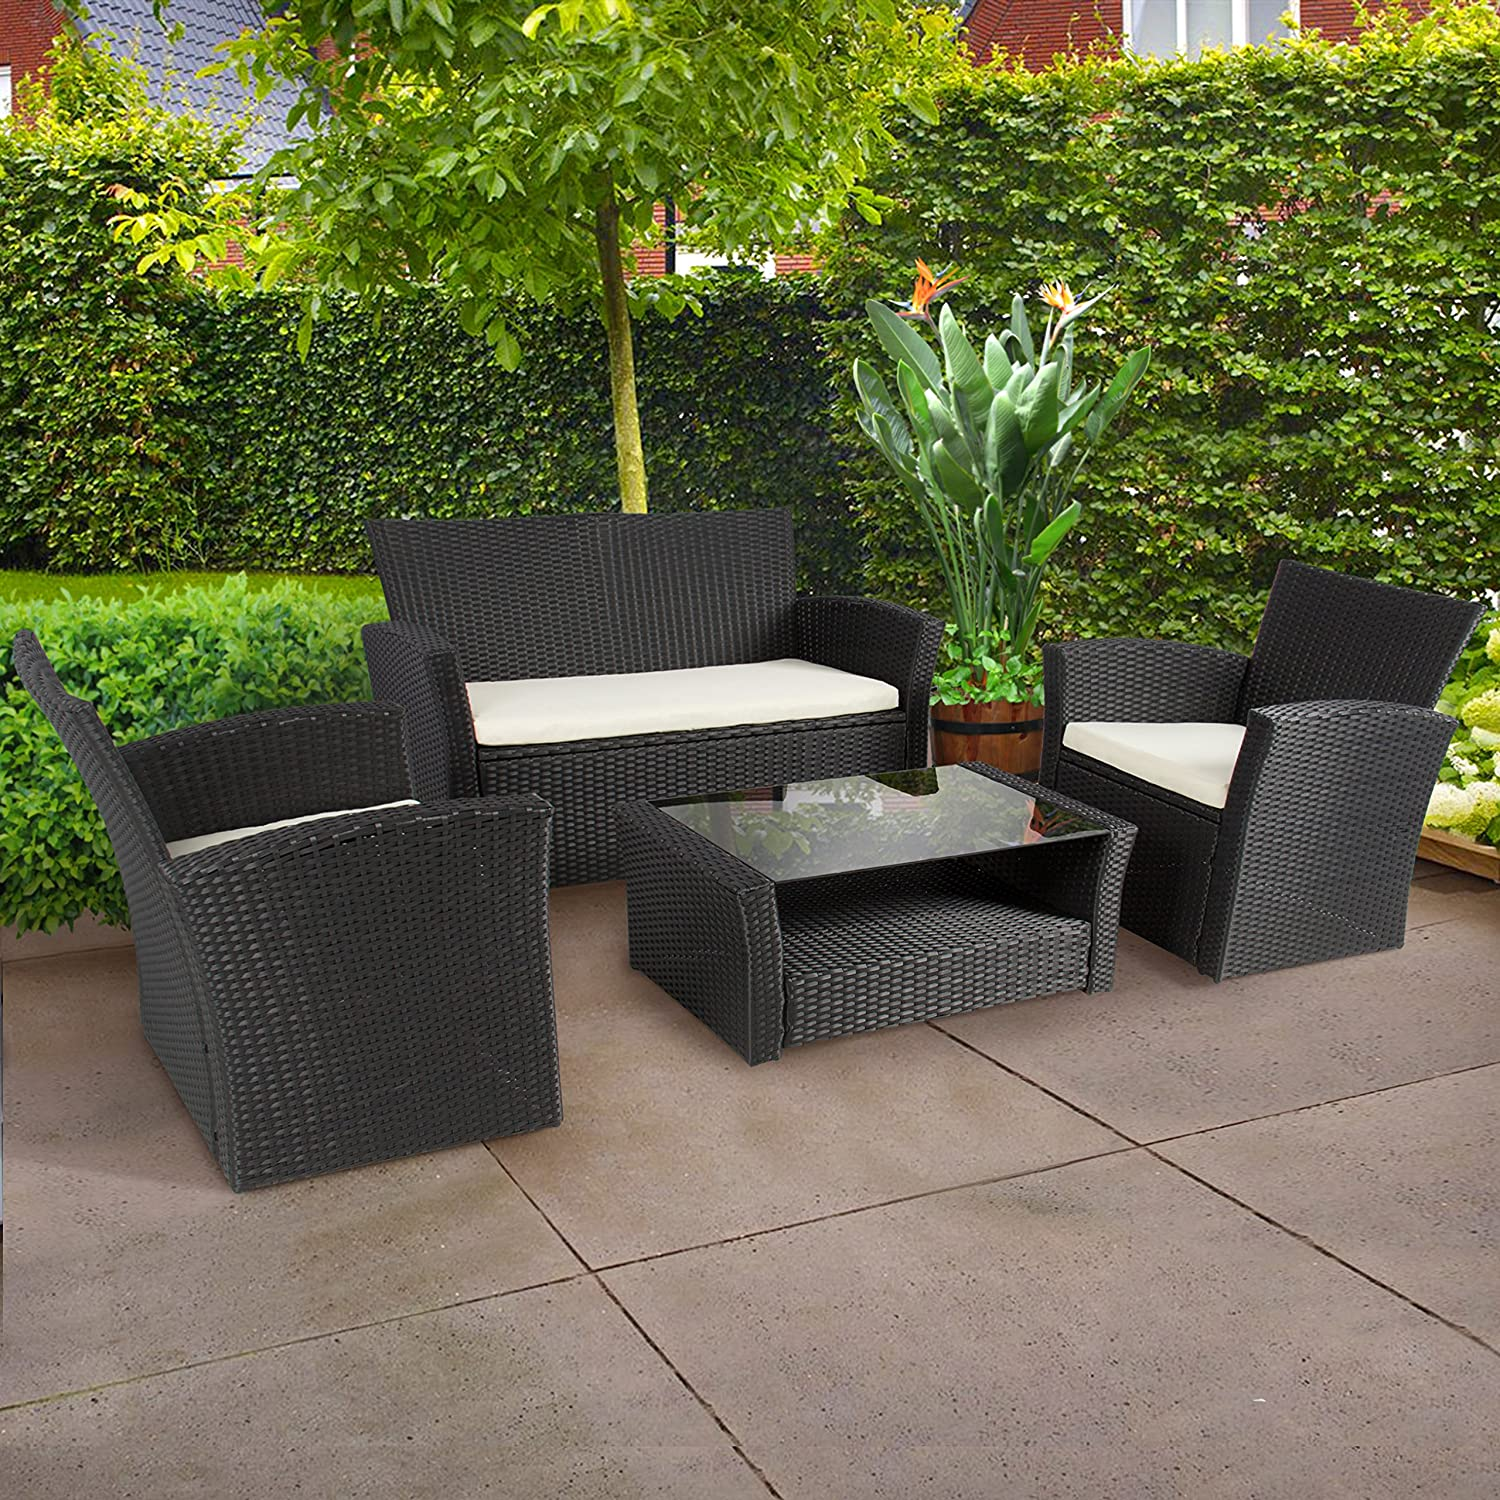 Amazon.com : Best Choice Products 4pc Outdoor Patio Garden Furniture Wicker  Rattan Sofa Set Black : Garden U0026 Outdoor Part 44